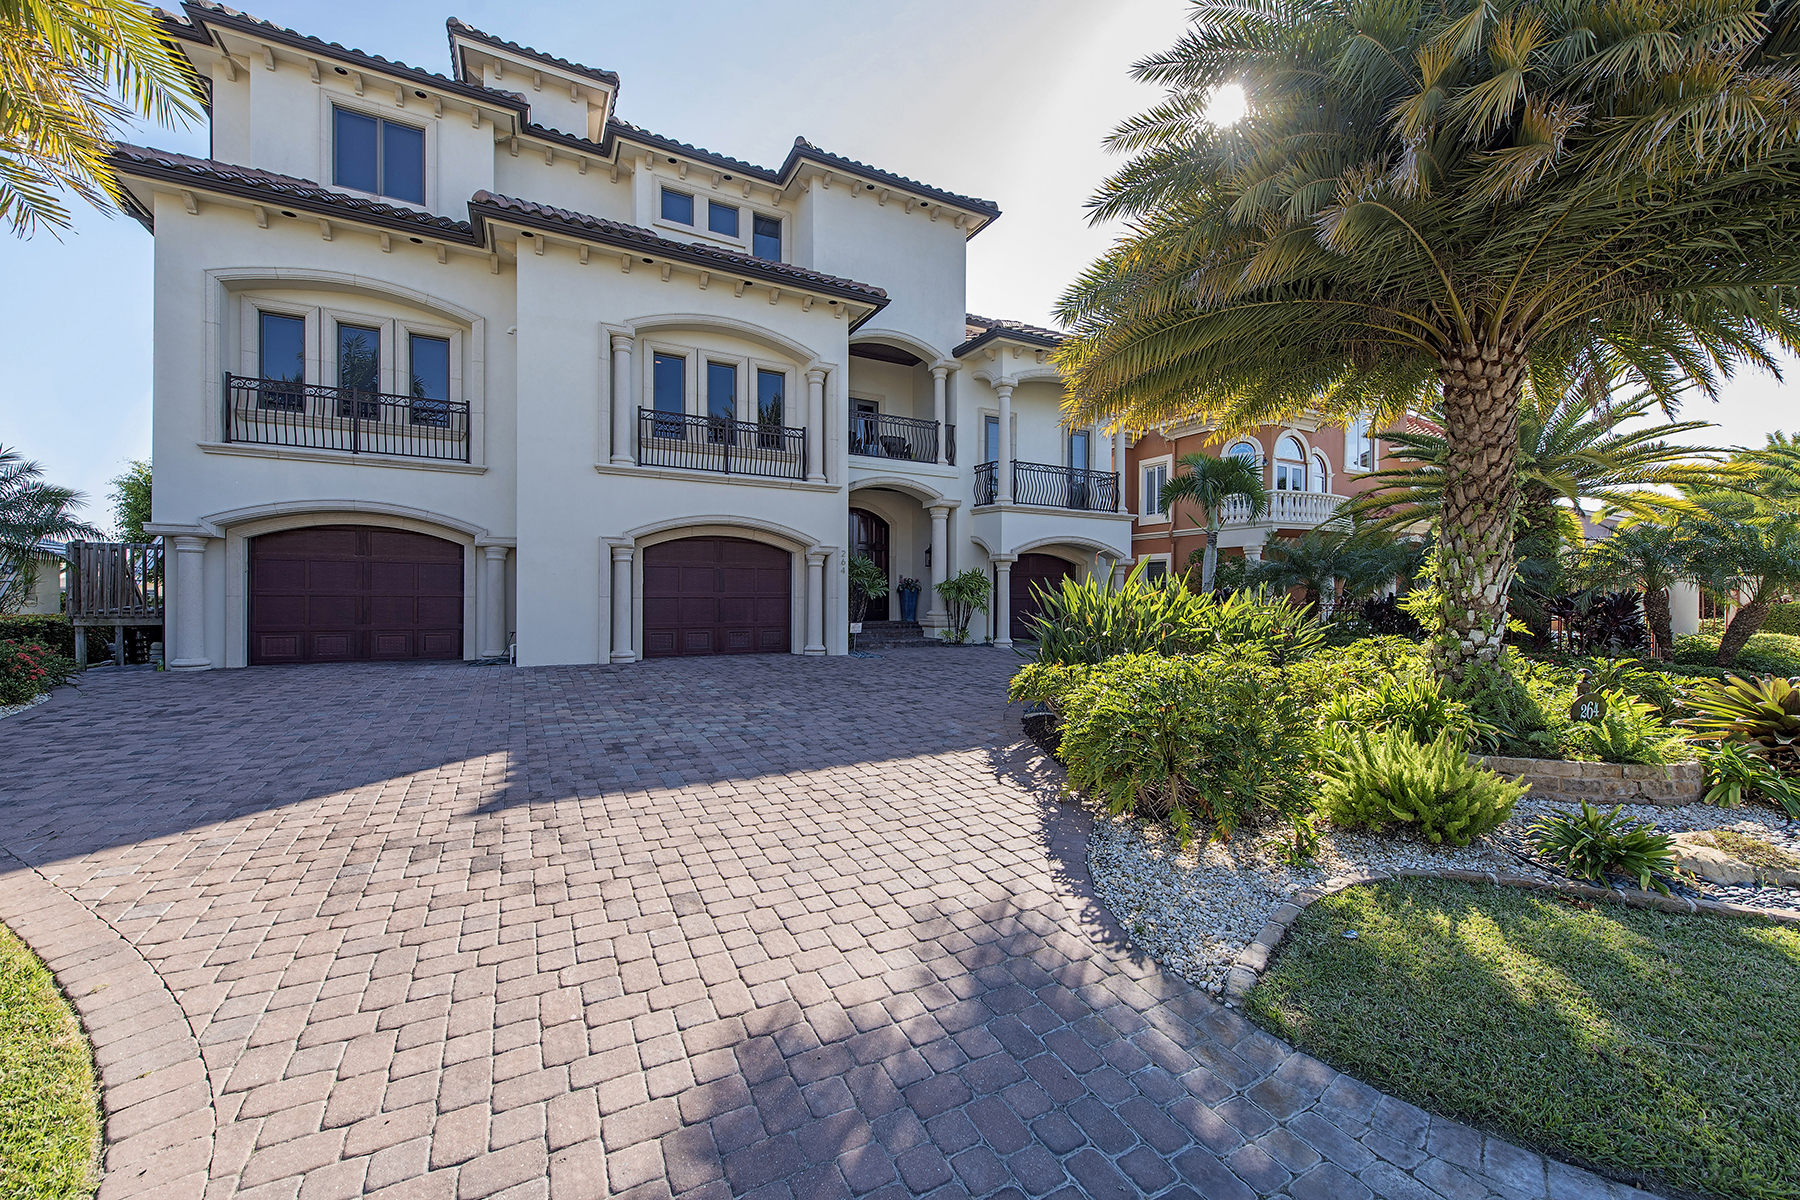 Single Family Home for Sale at VANDERBILT BEACH - CONNORS 264 Bayview Ave, Naples, Florida 34108 United States